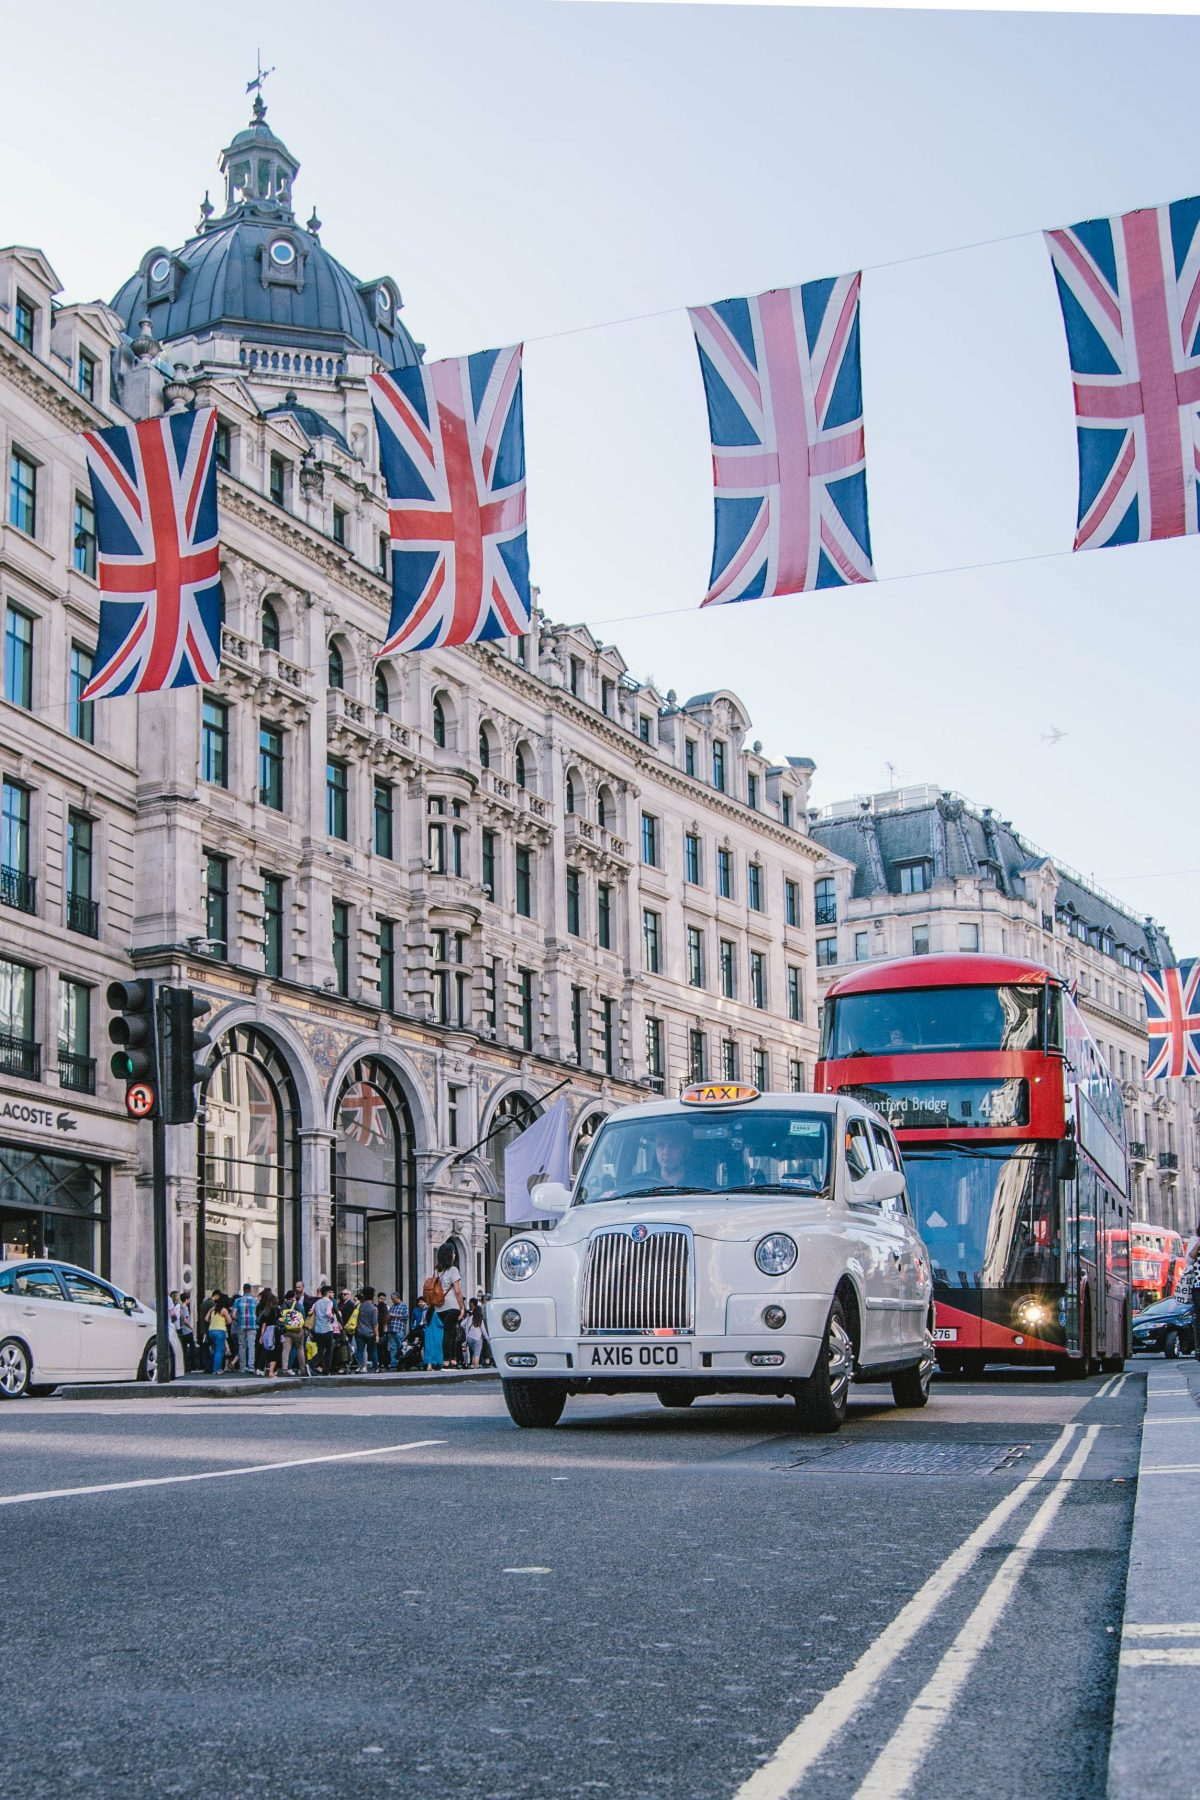 Oxford Street with Bus, Car and UK flag